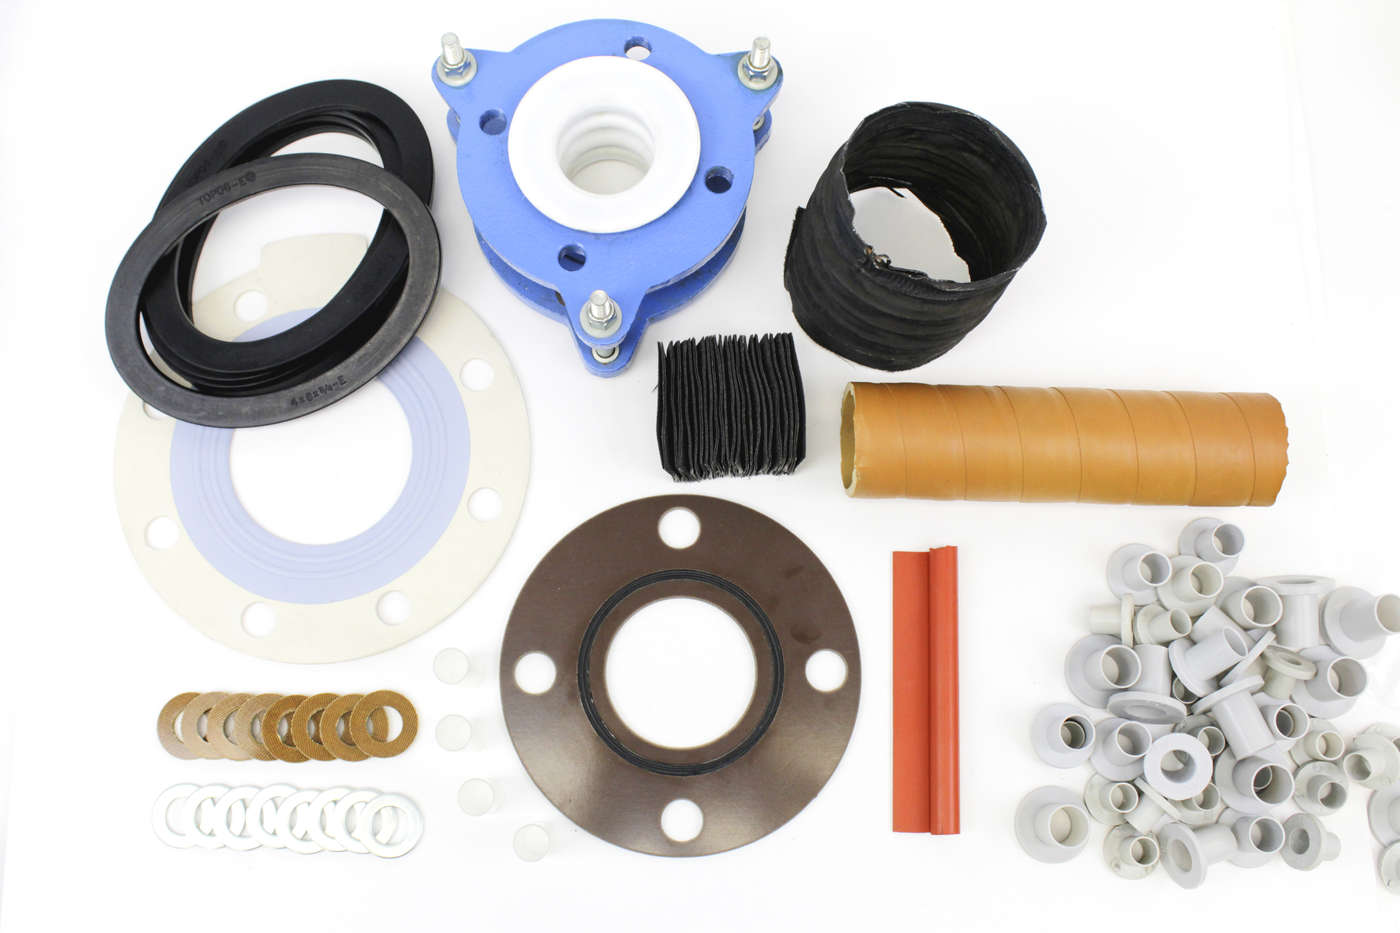 Teflon envelope gaskets